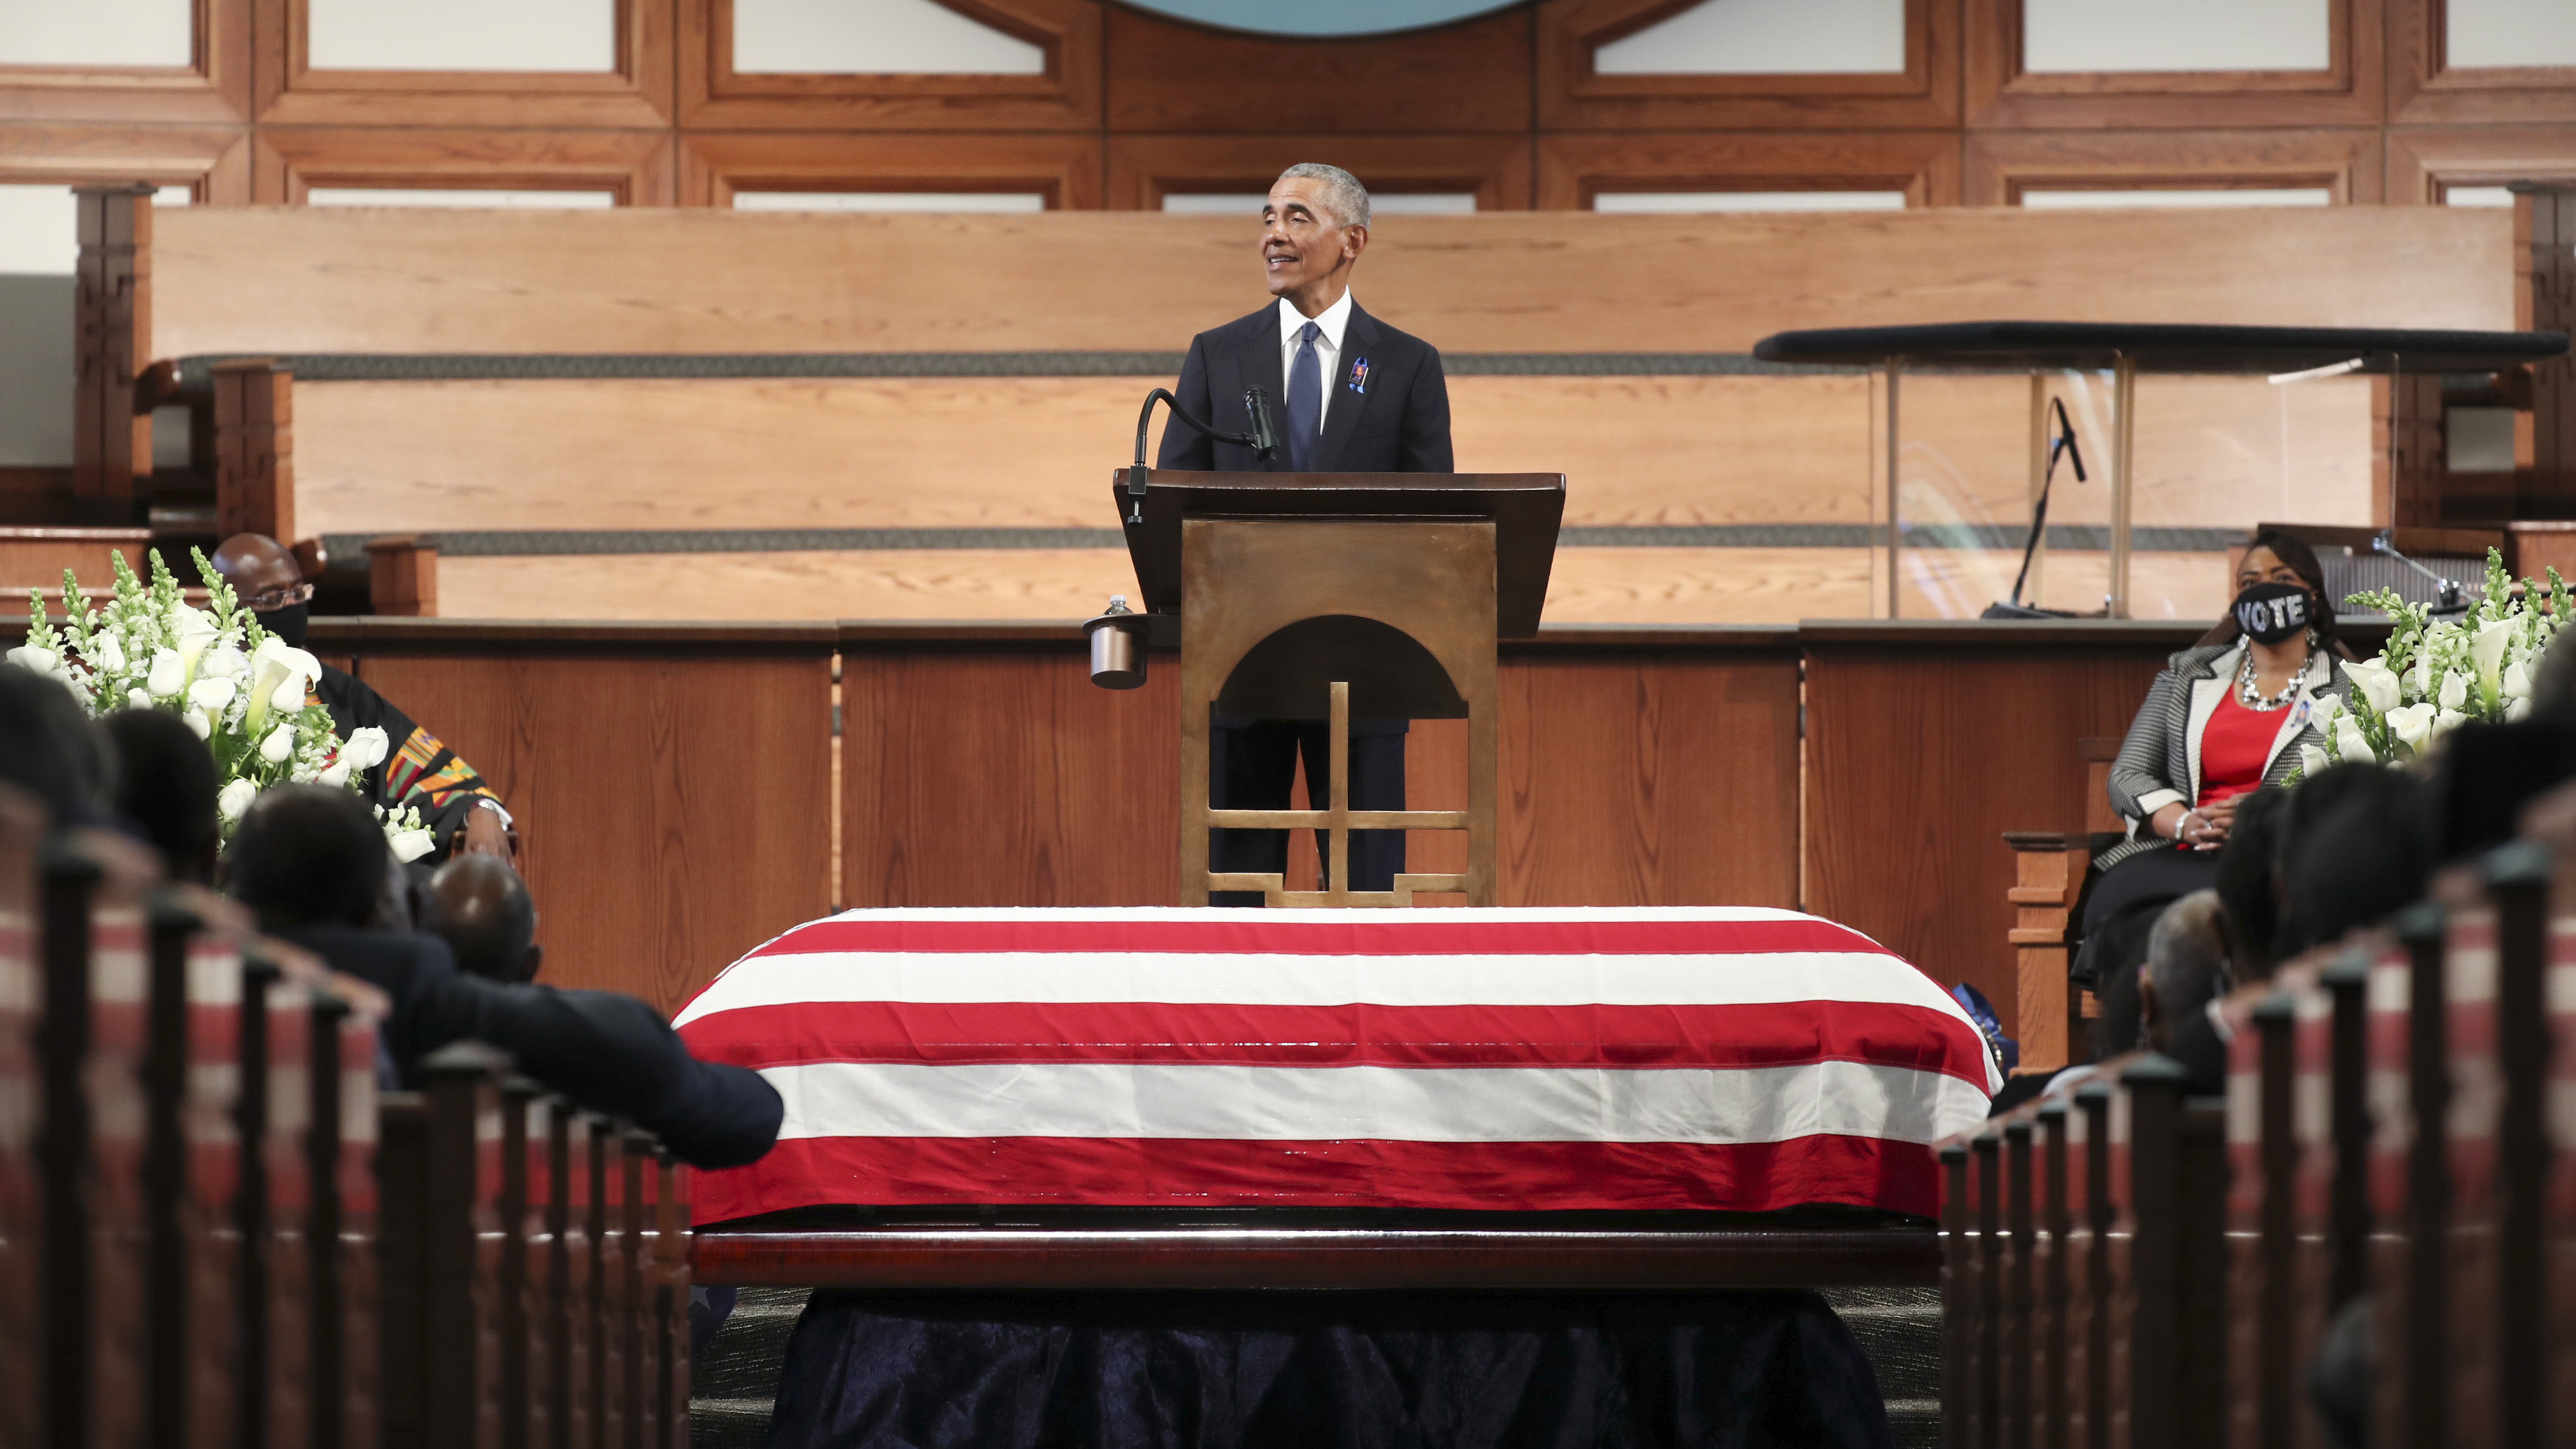 Former President Barack Obama pays tribute to the late Rep. John Lewis, D-Ga., during services Thursday at Ebenezer Baptist Church in Atlanta.